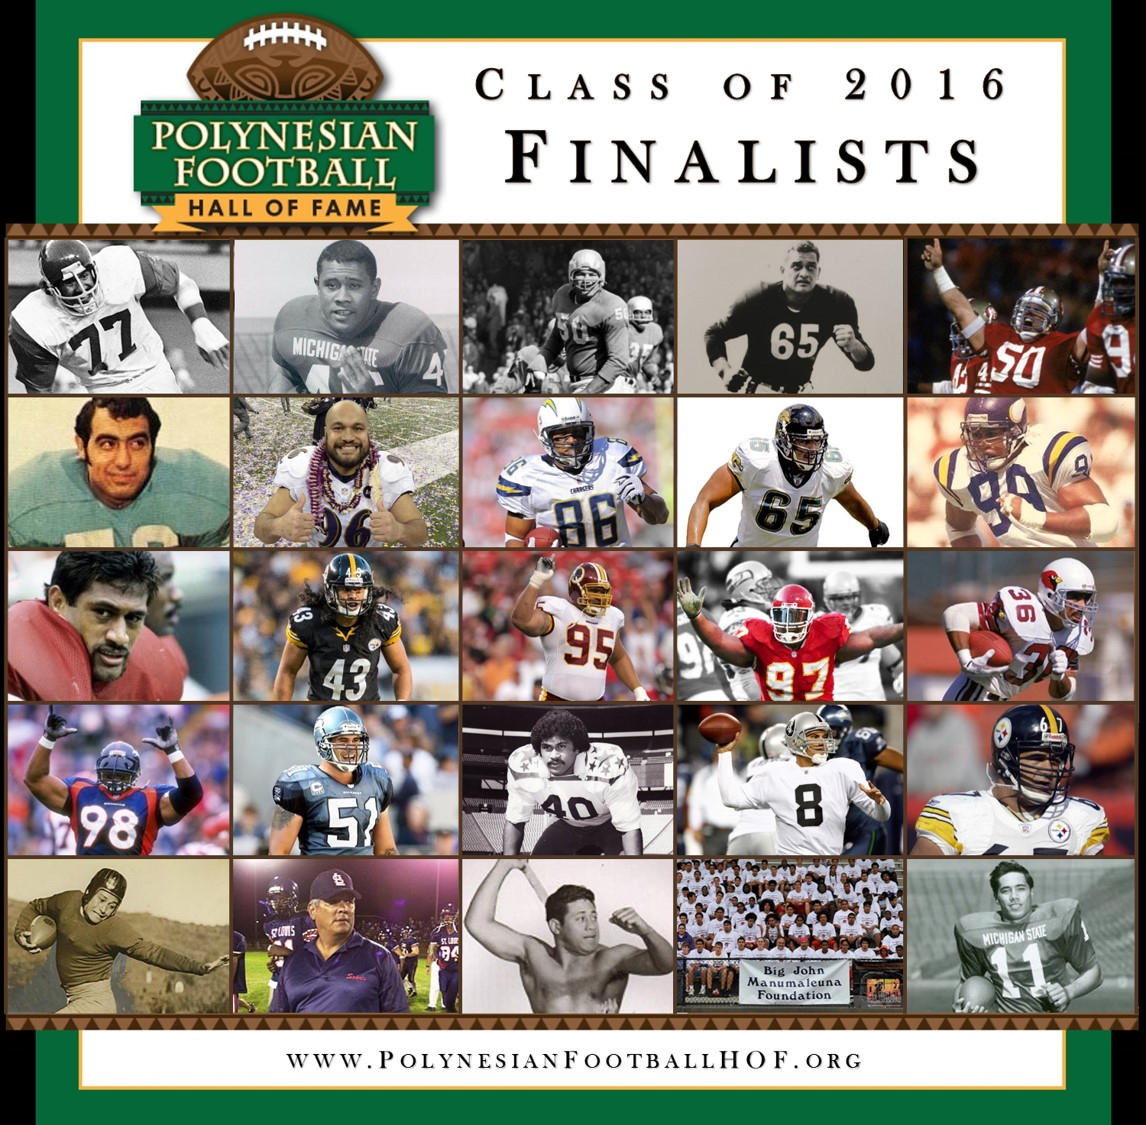 Polynesian Football Hall of Fame Finalist 2016